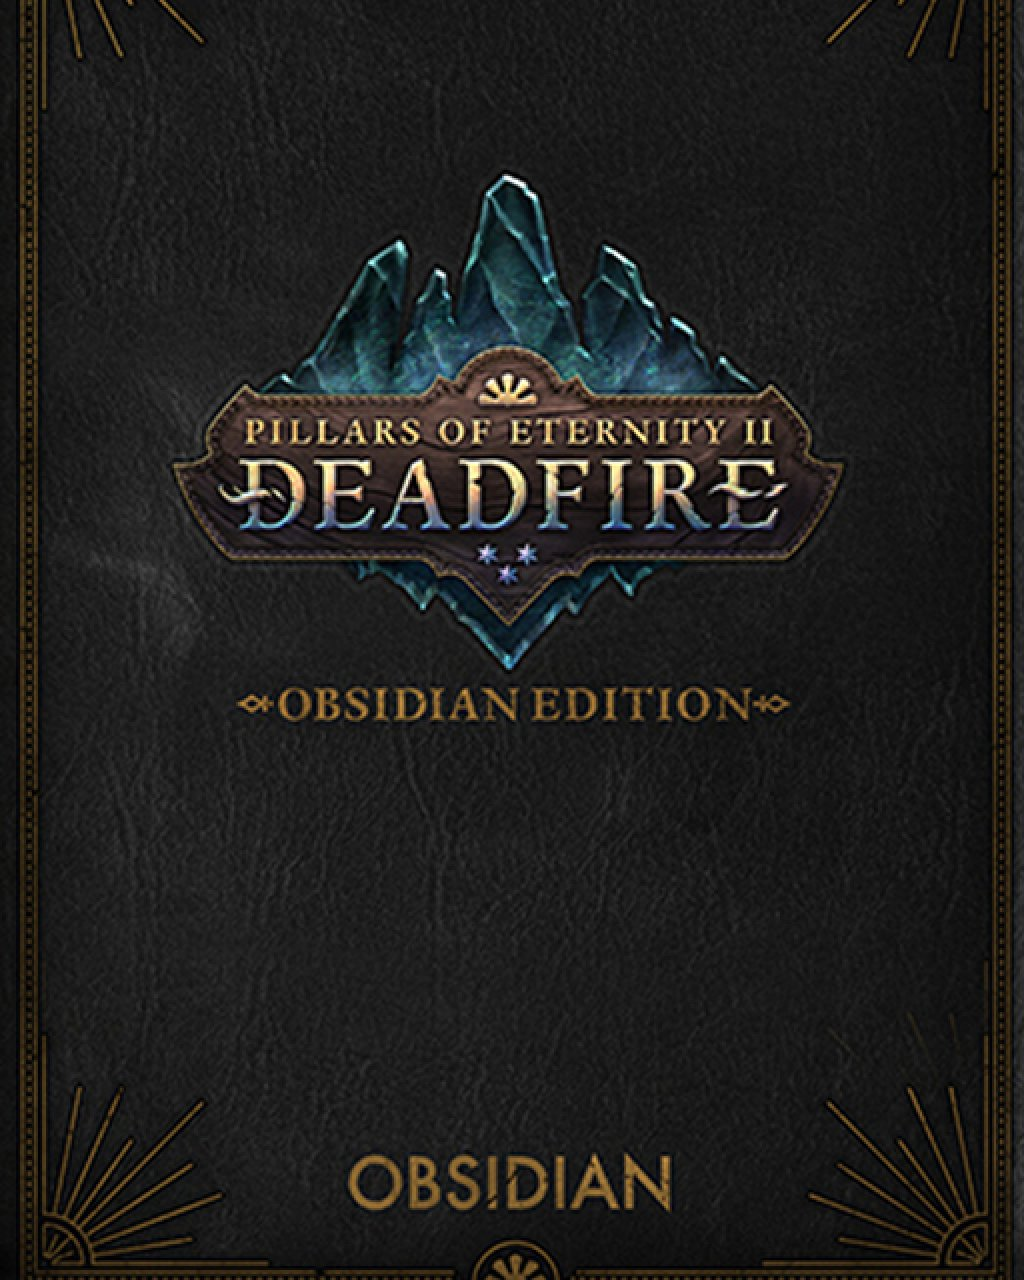 Pillars of Eternity 2 Deadfire Obsidian Edition krabice